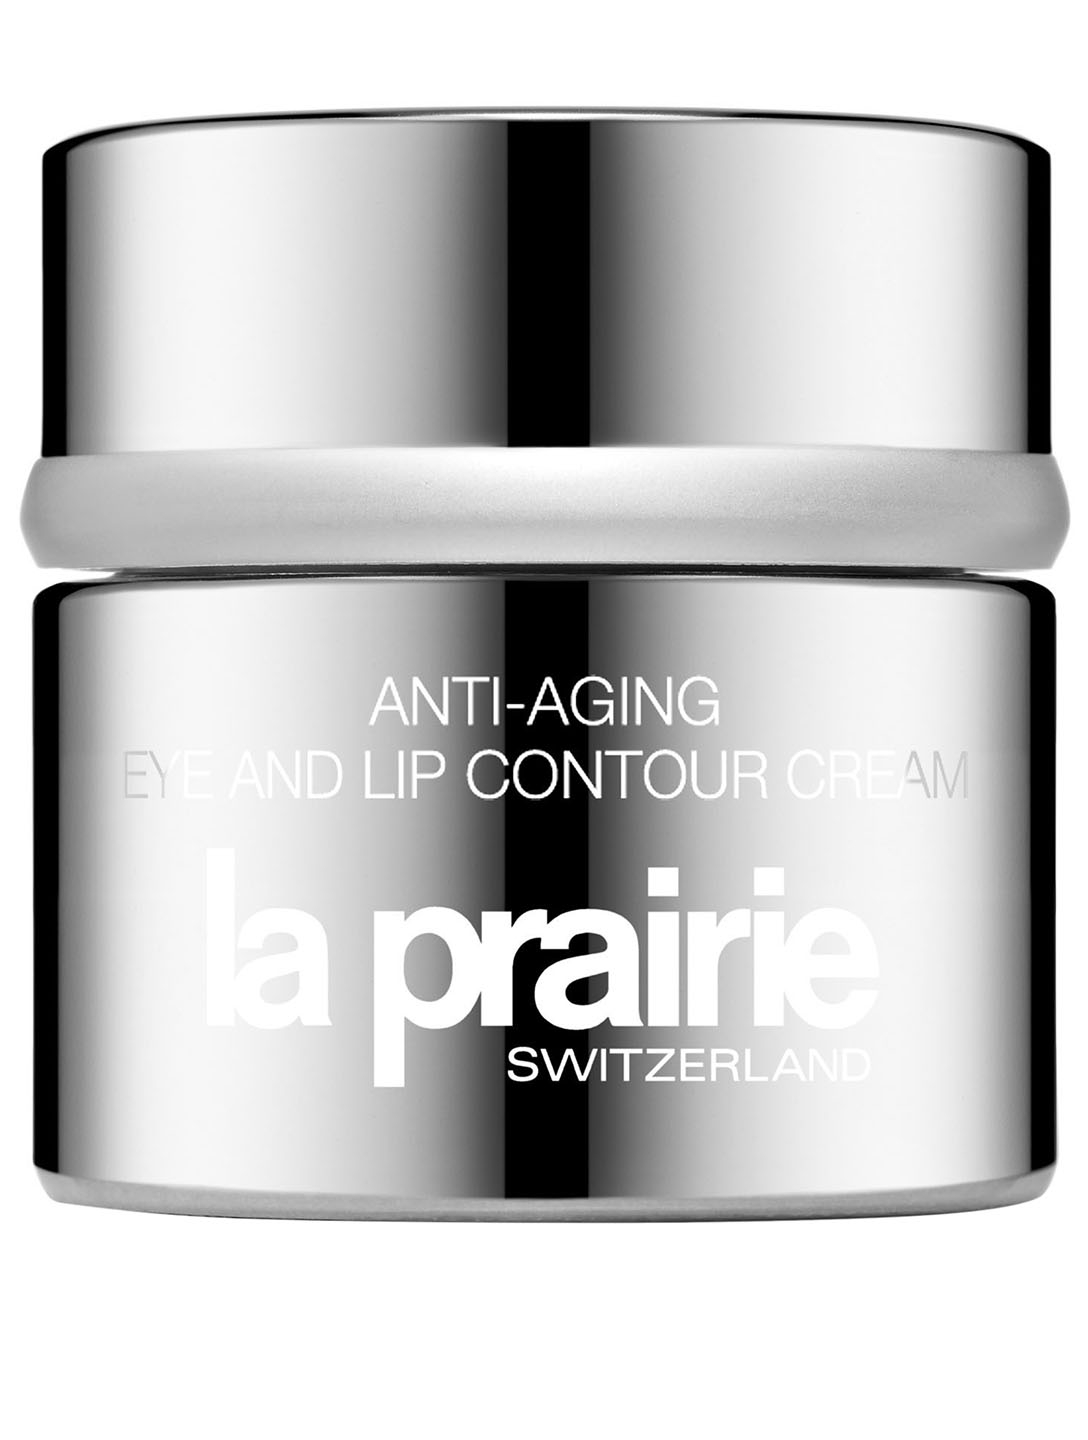 LA PRAIRIE Anti-Aging Eye And Lip Contour Cream Beauty